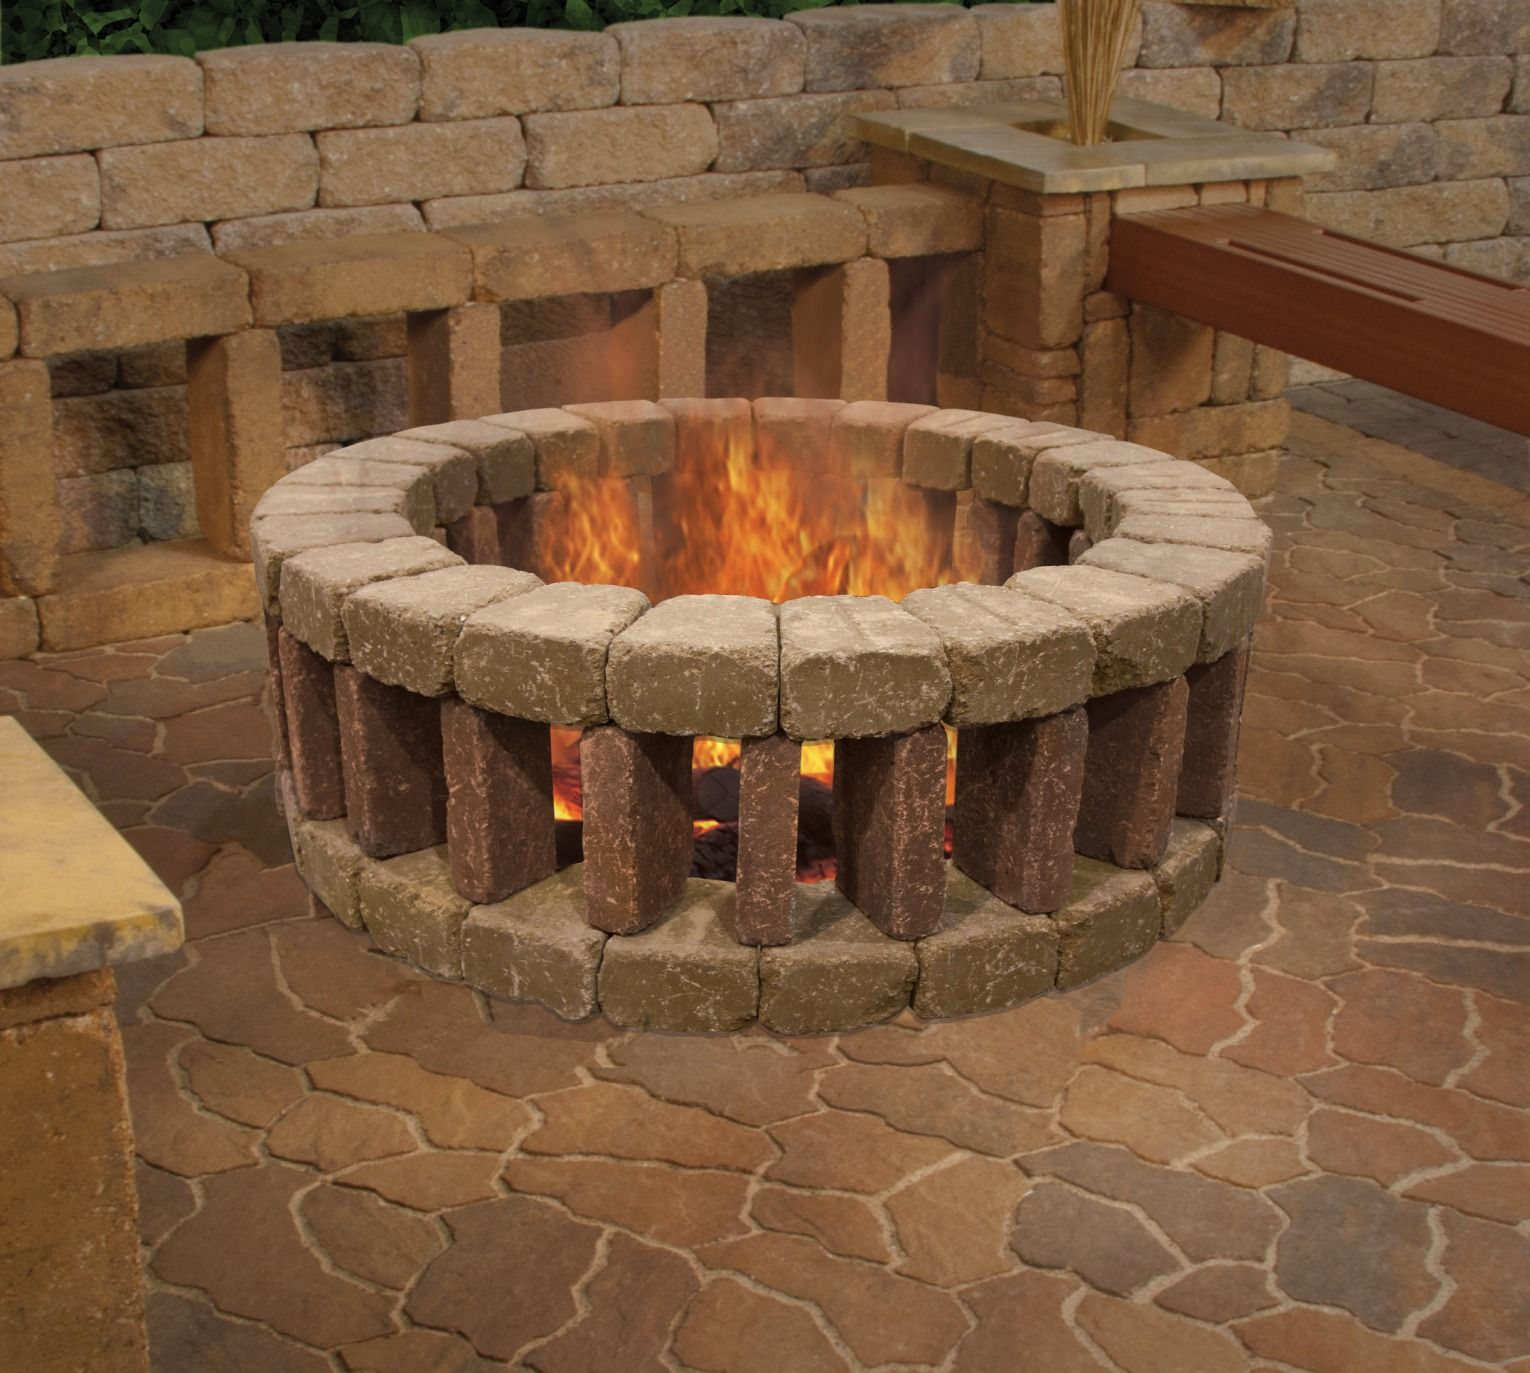 410756565818d7c0bf34db77039e9396 Top Result 50 Lovely Outdoor Gas Fire Bowl